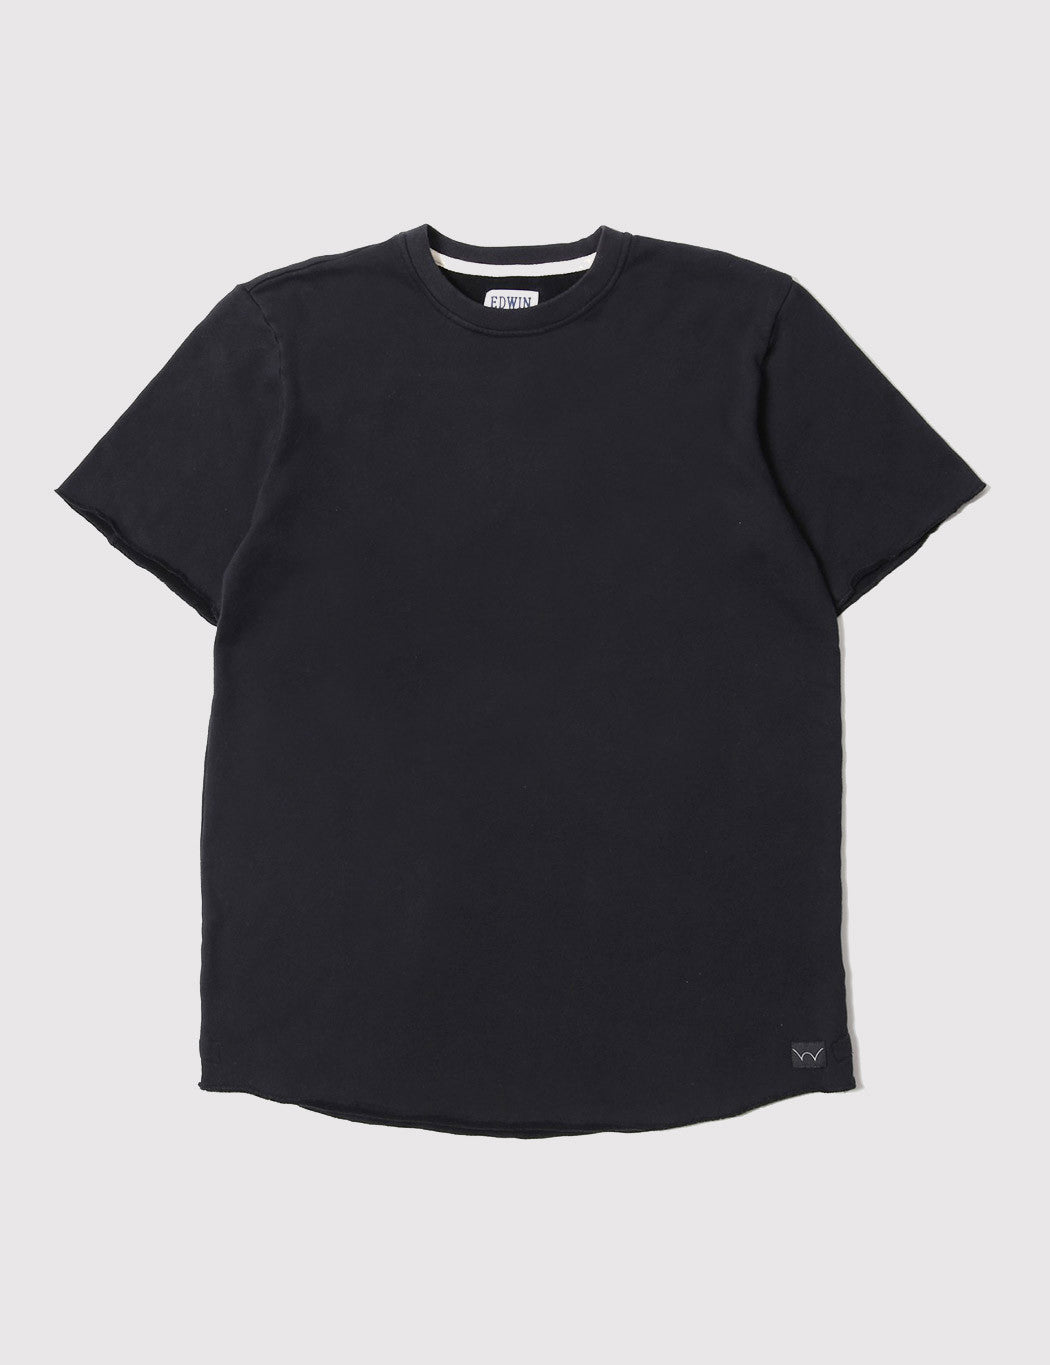 Edwin Terry T-Shirt - Black